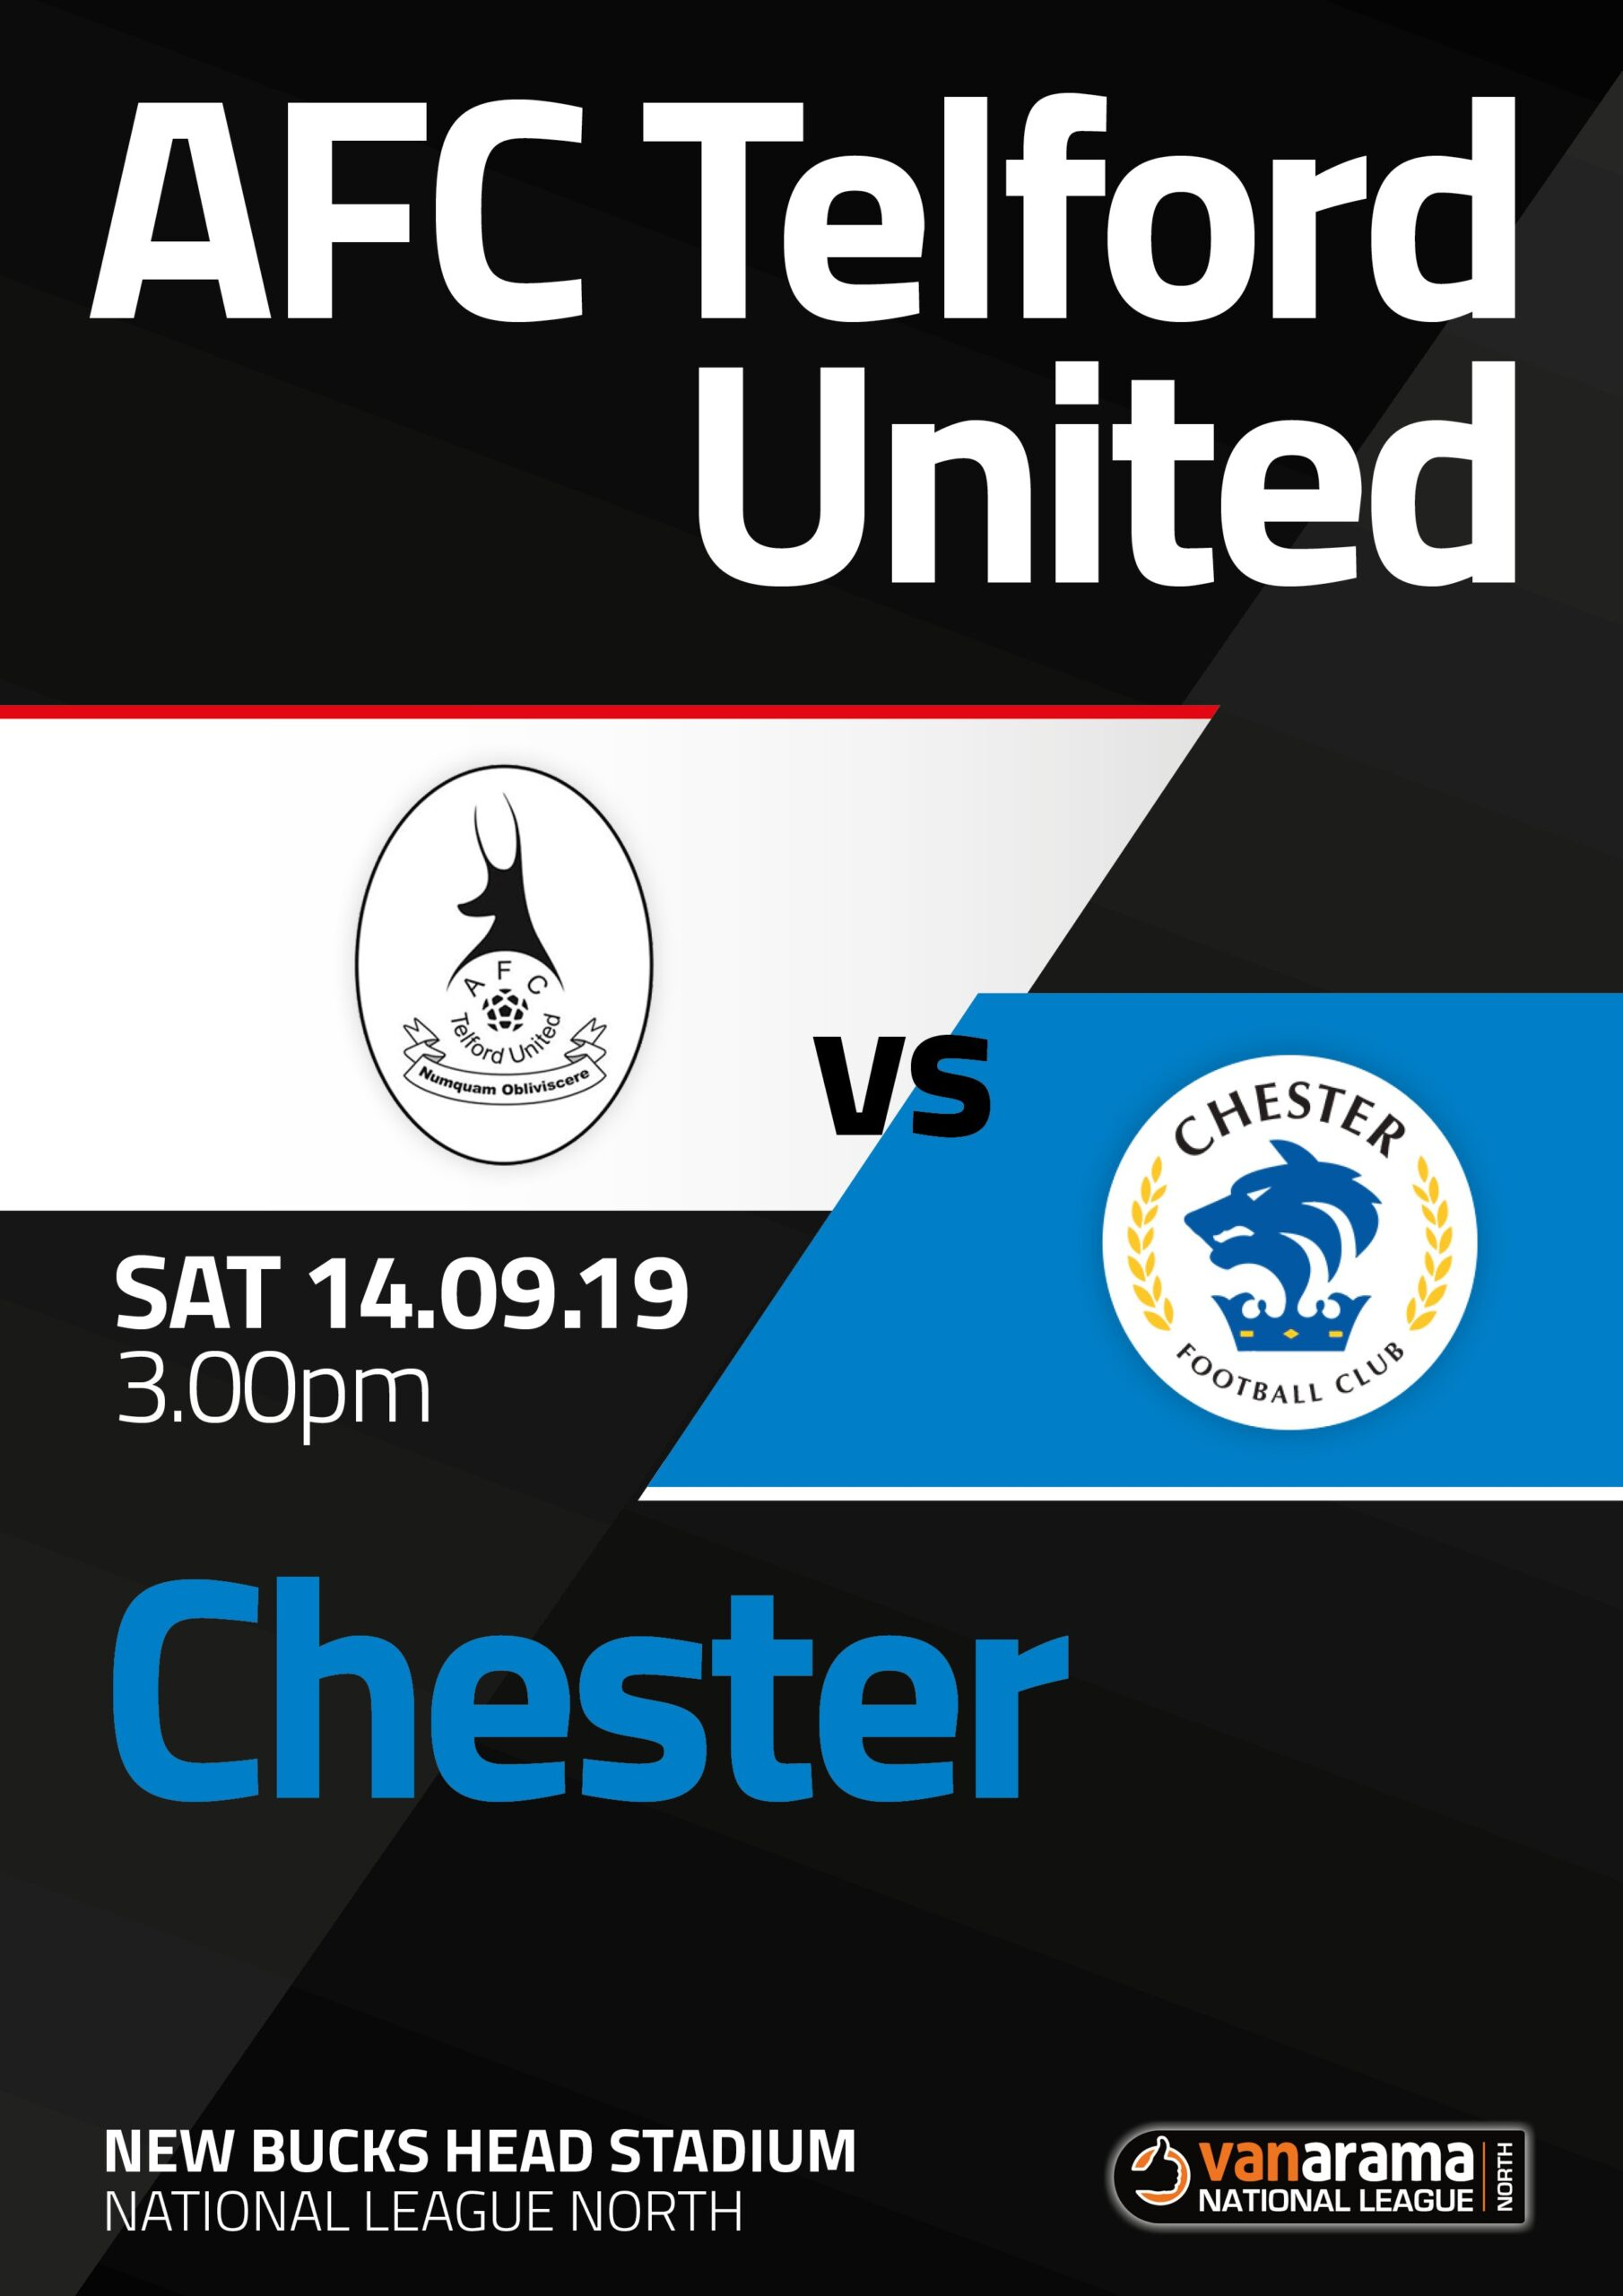 Match Guide – Chester